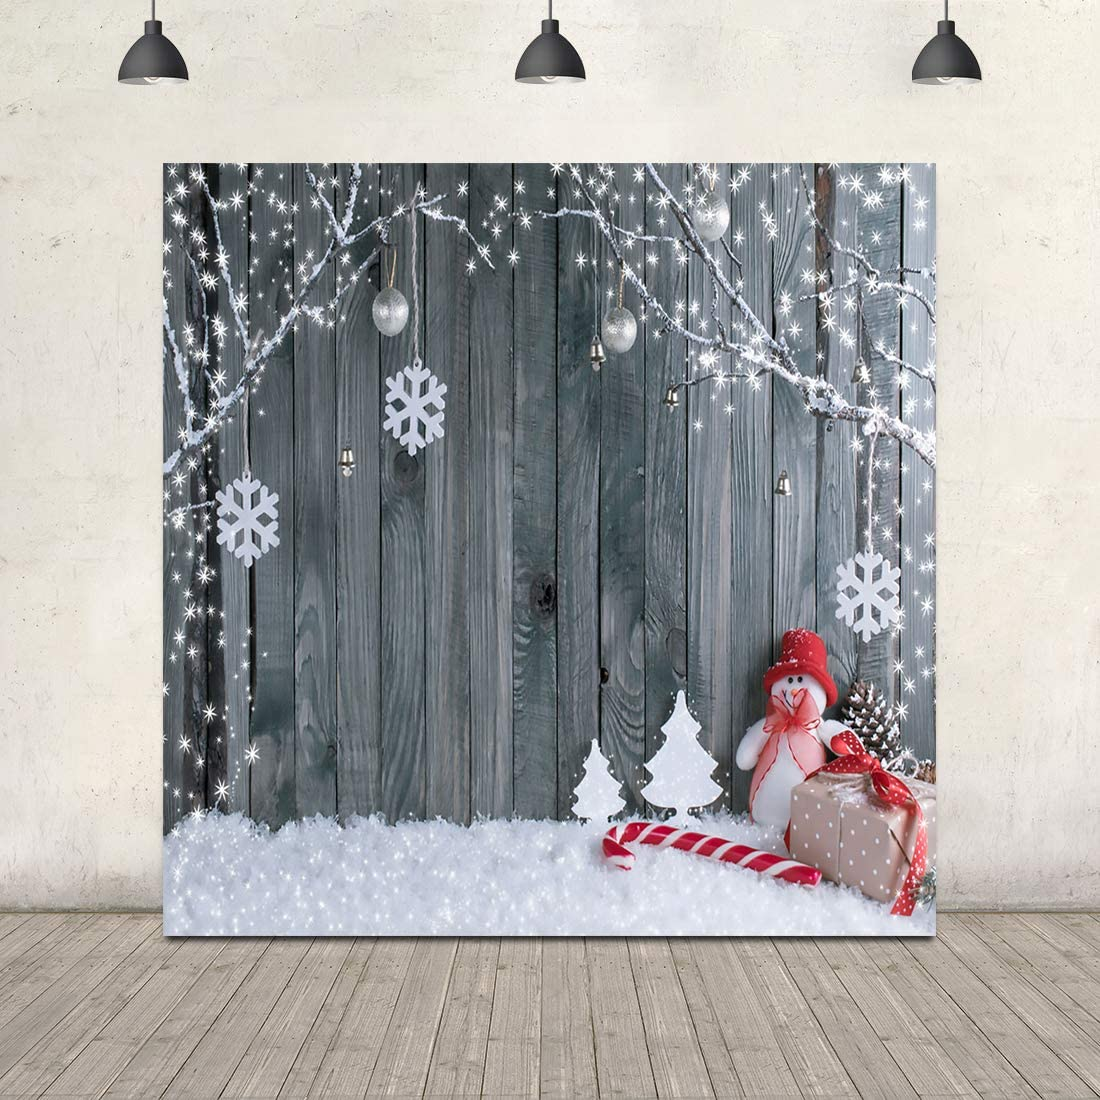 Christmas Wood Backdrop Winter Snow Backgrounds for Photography 10X10ft Snowman Snowflake Christmas Backdrop with Floor Xmas Party Supplies New Year Decors Kids Portrait Christmas Photo Booth Props